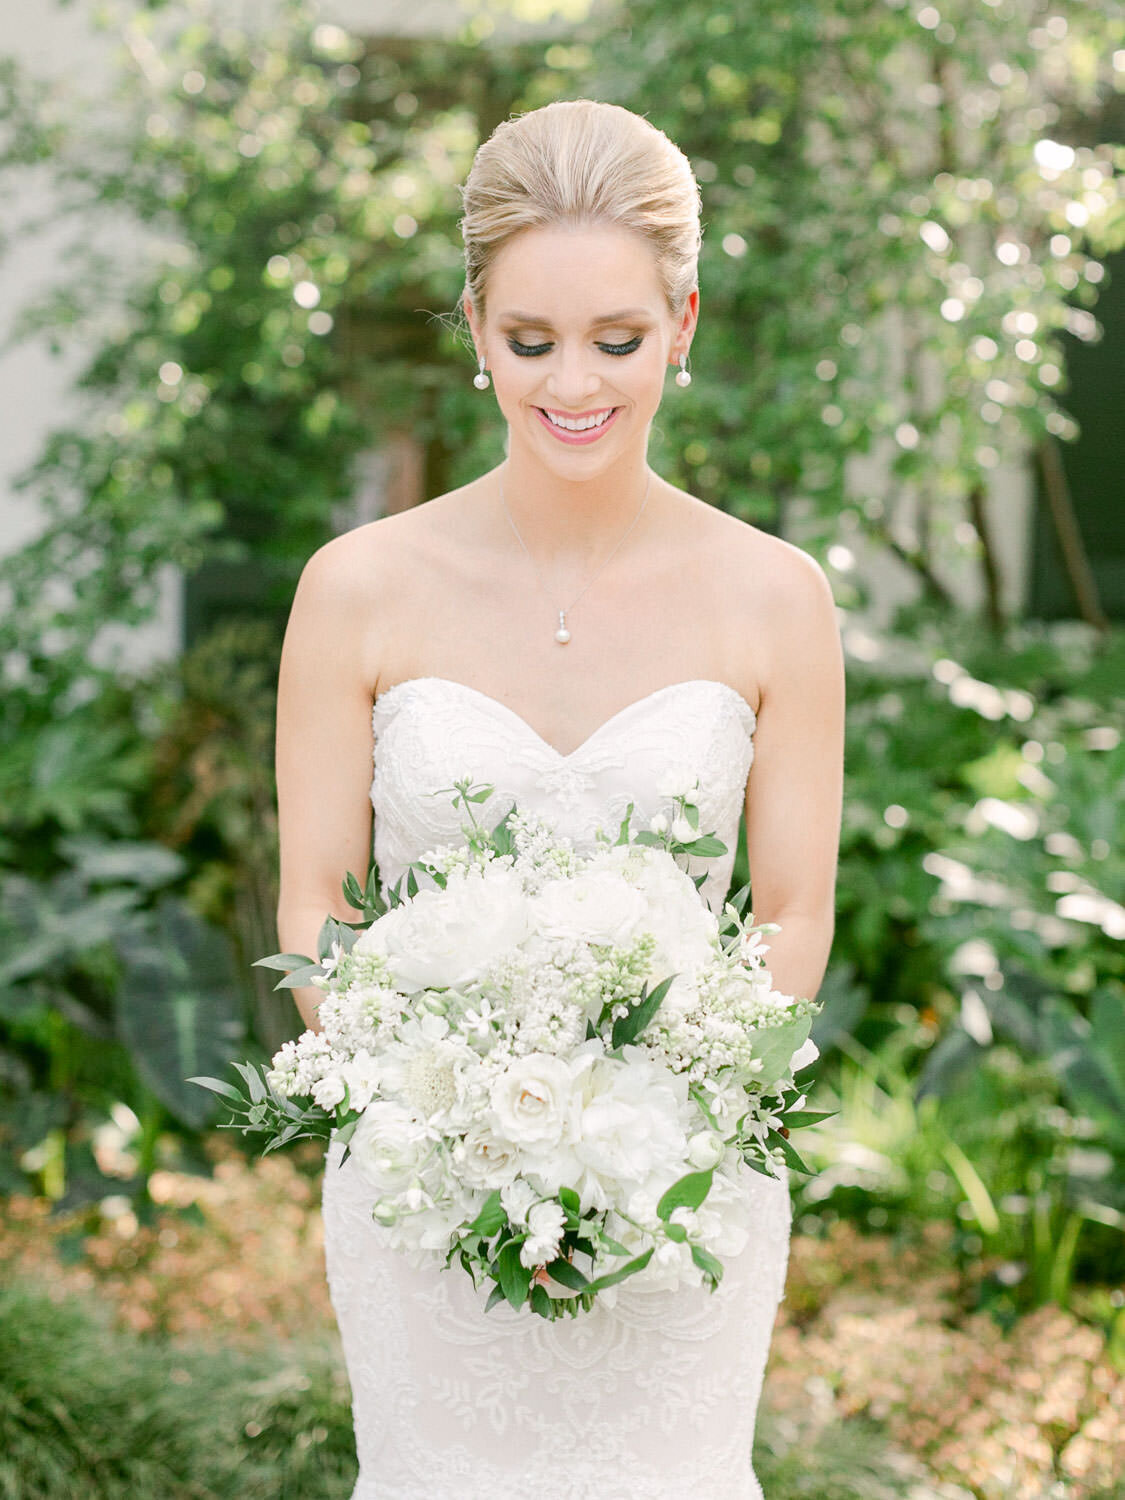 Bride holding white bouquet smiling in front of greenery at Dallas Arboretum Wedding